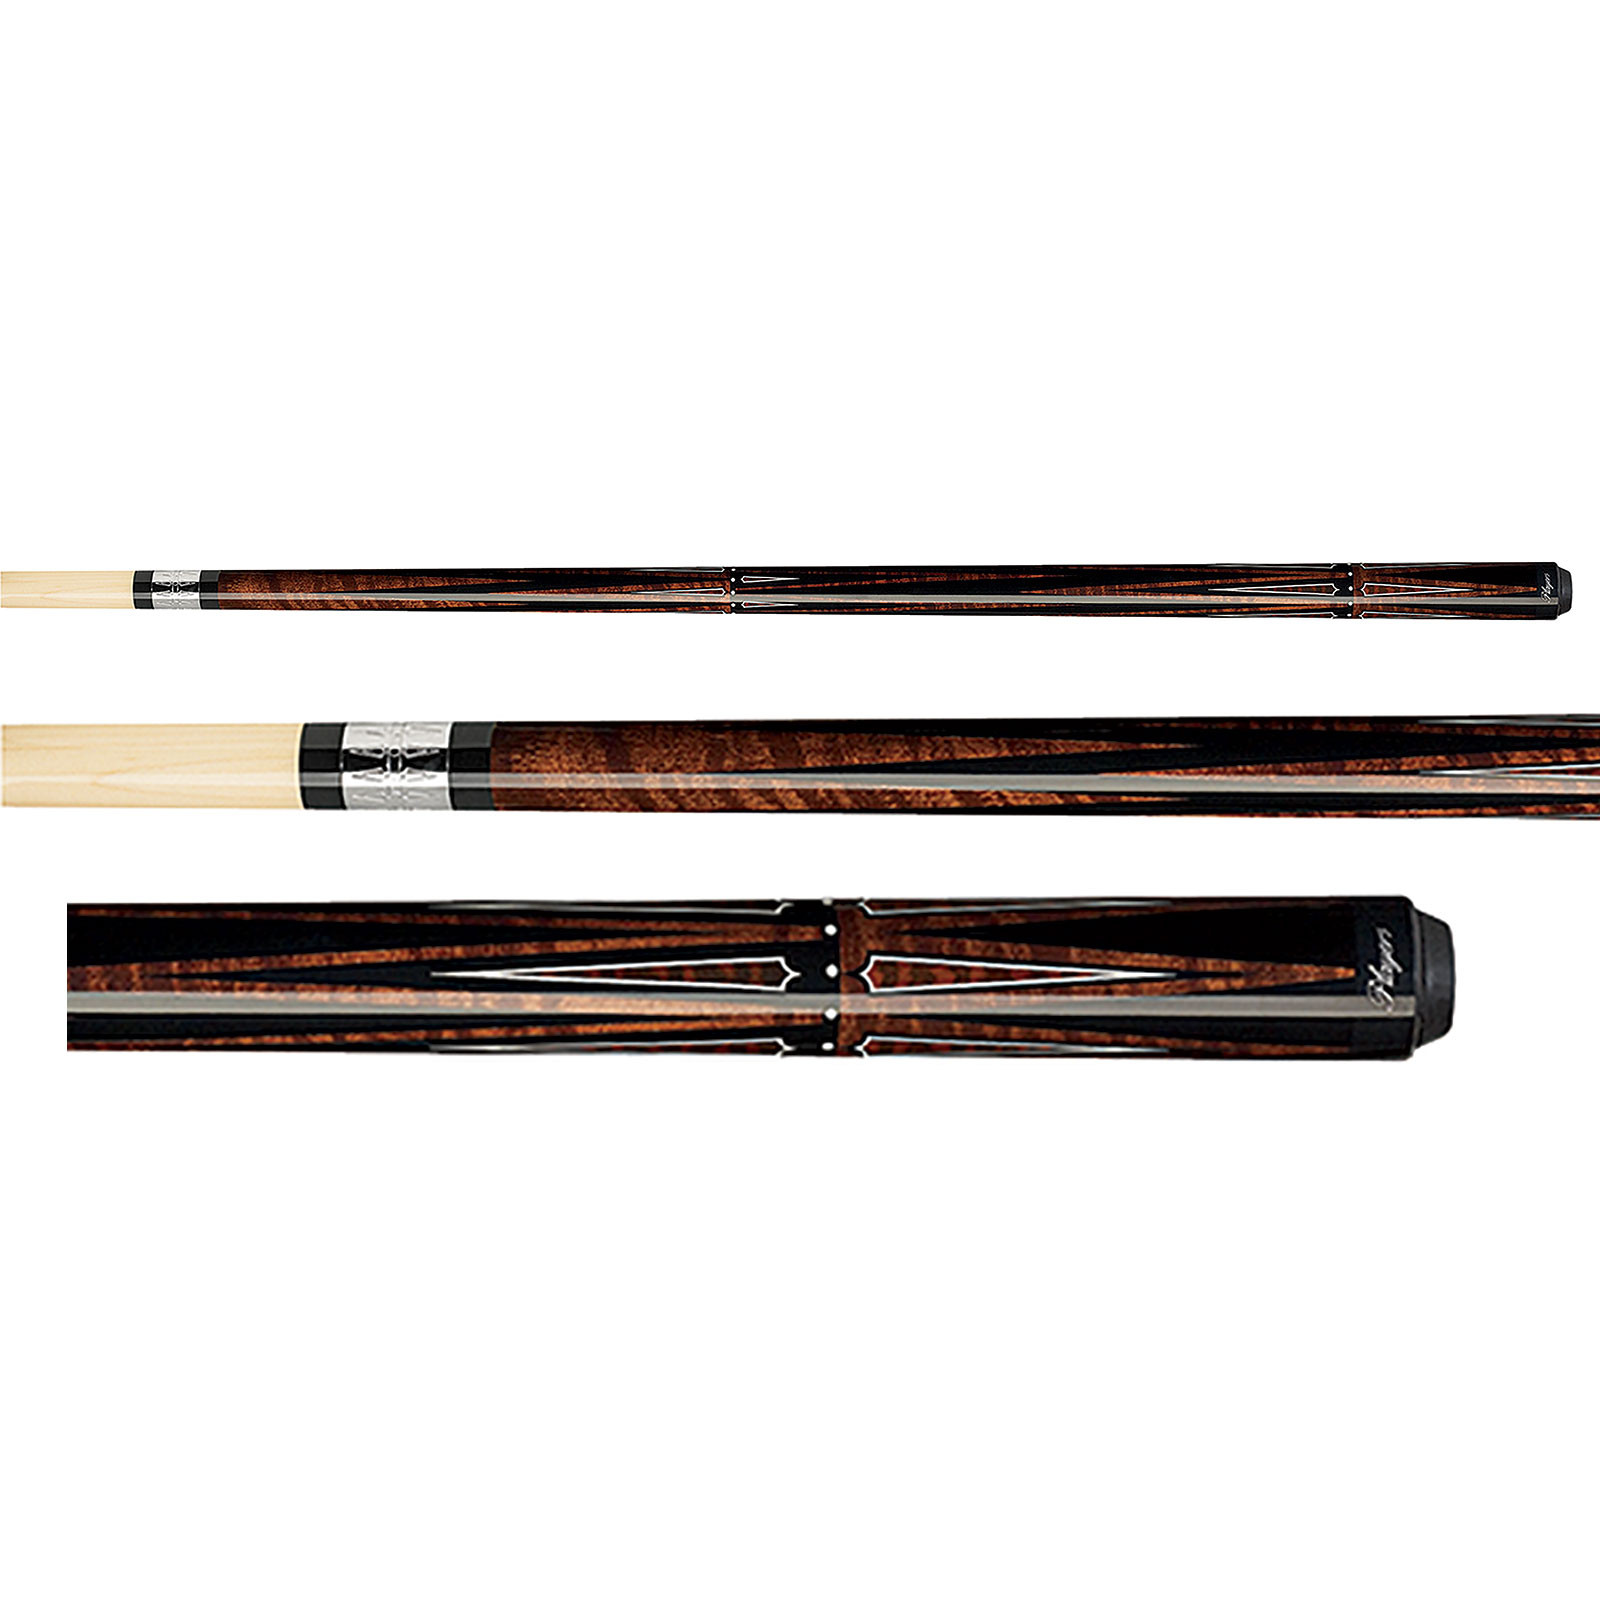 Players Acid AC20 Walnut Pool Cue